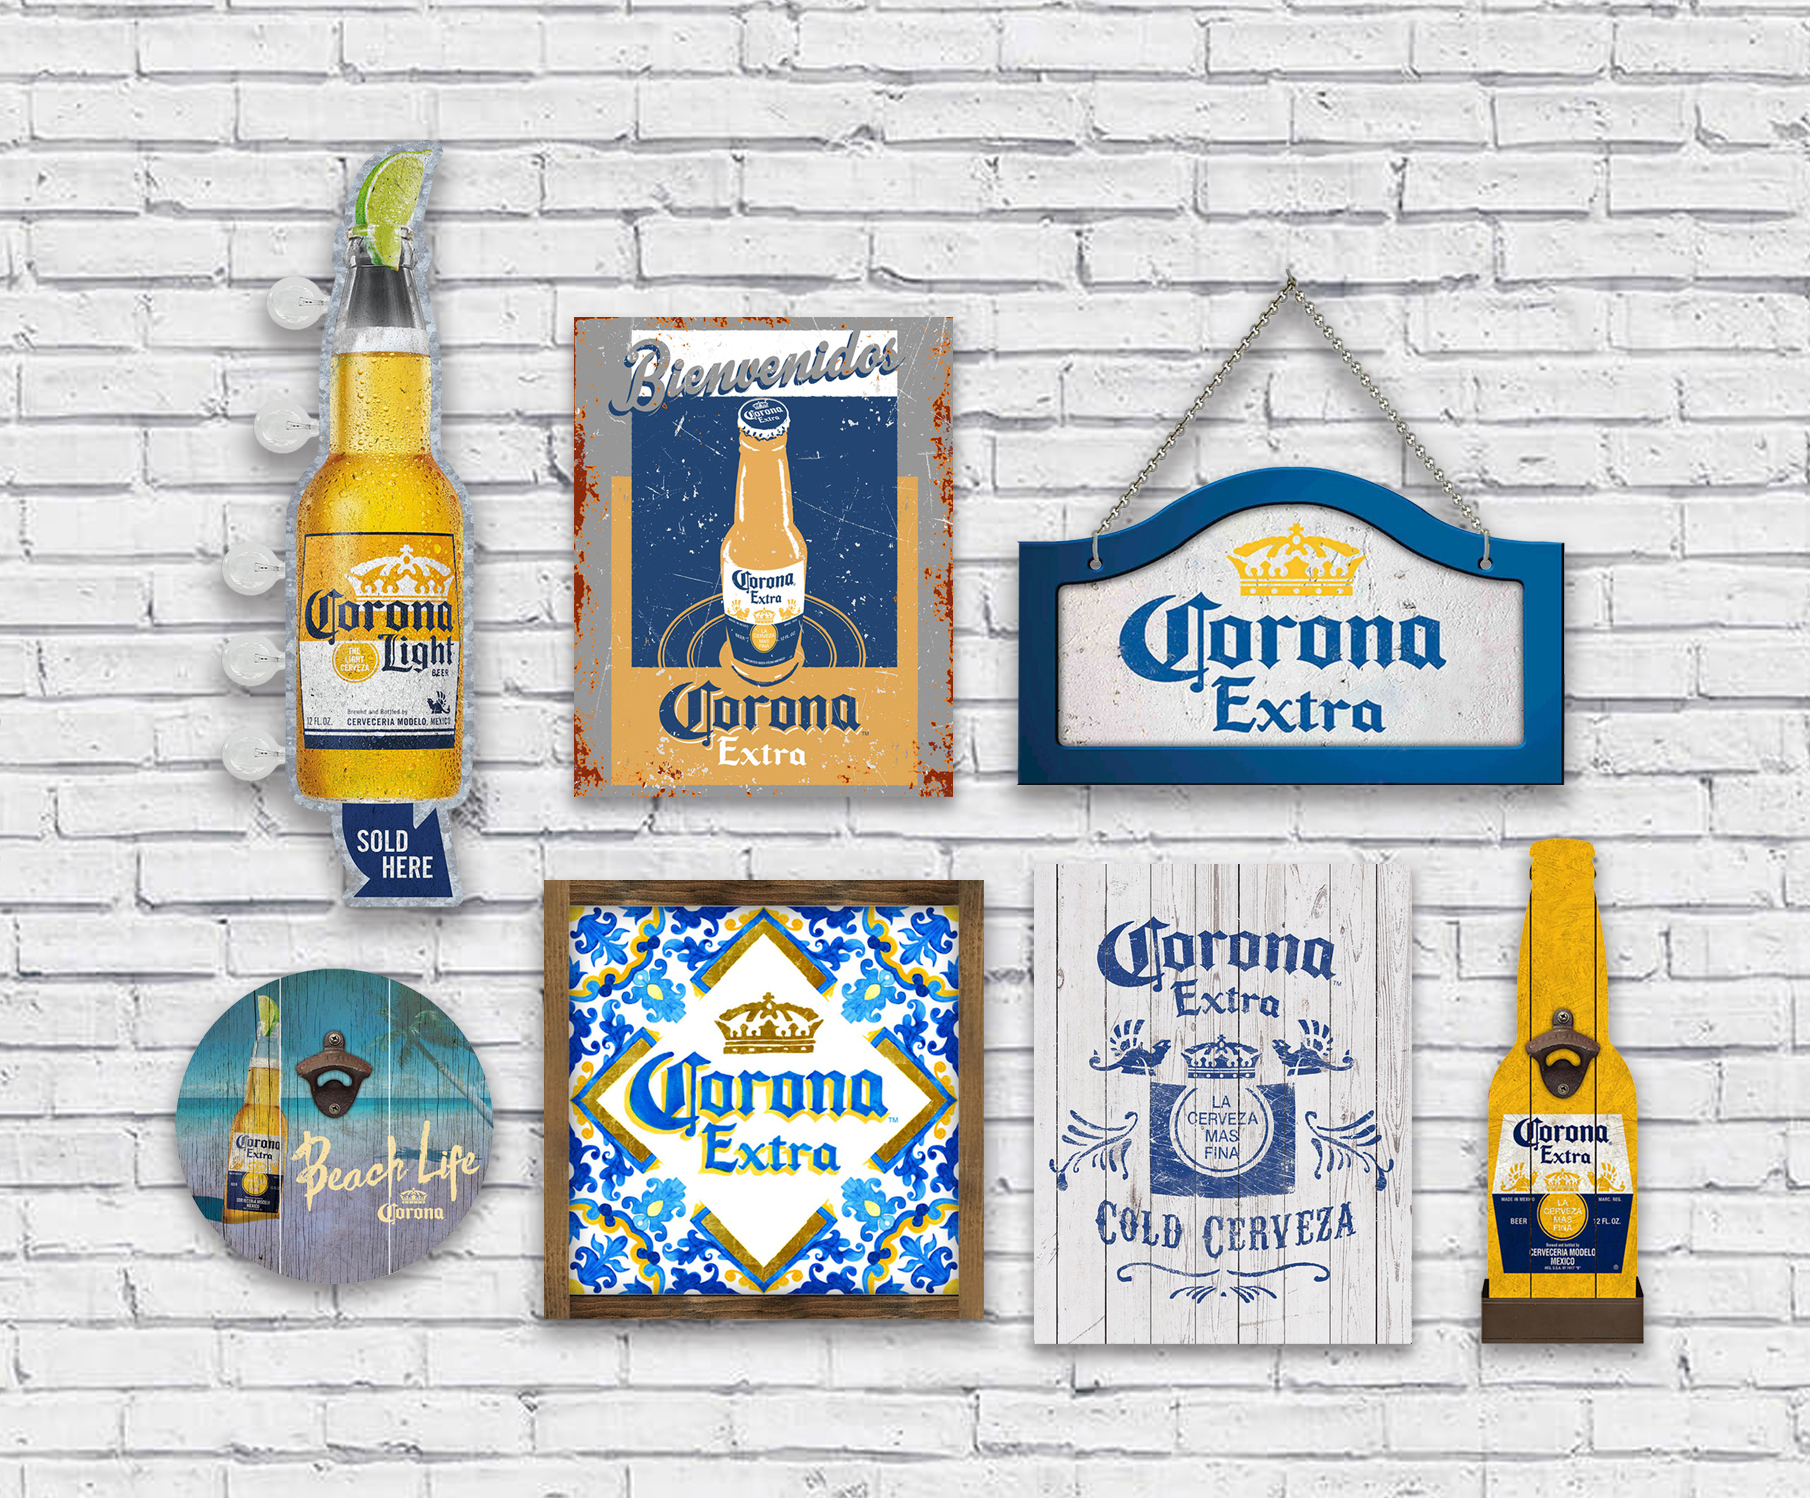 Corona Sign of the Times Brand Licensing Agency